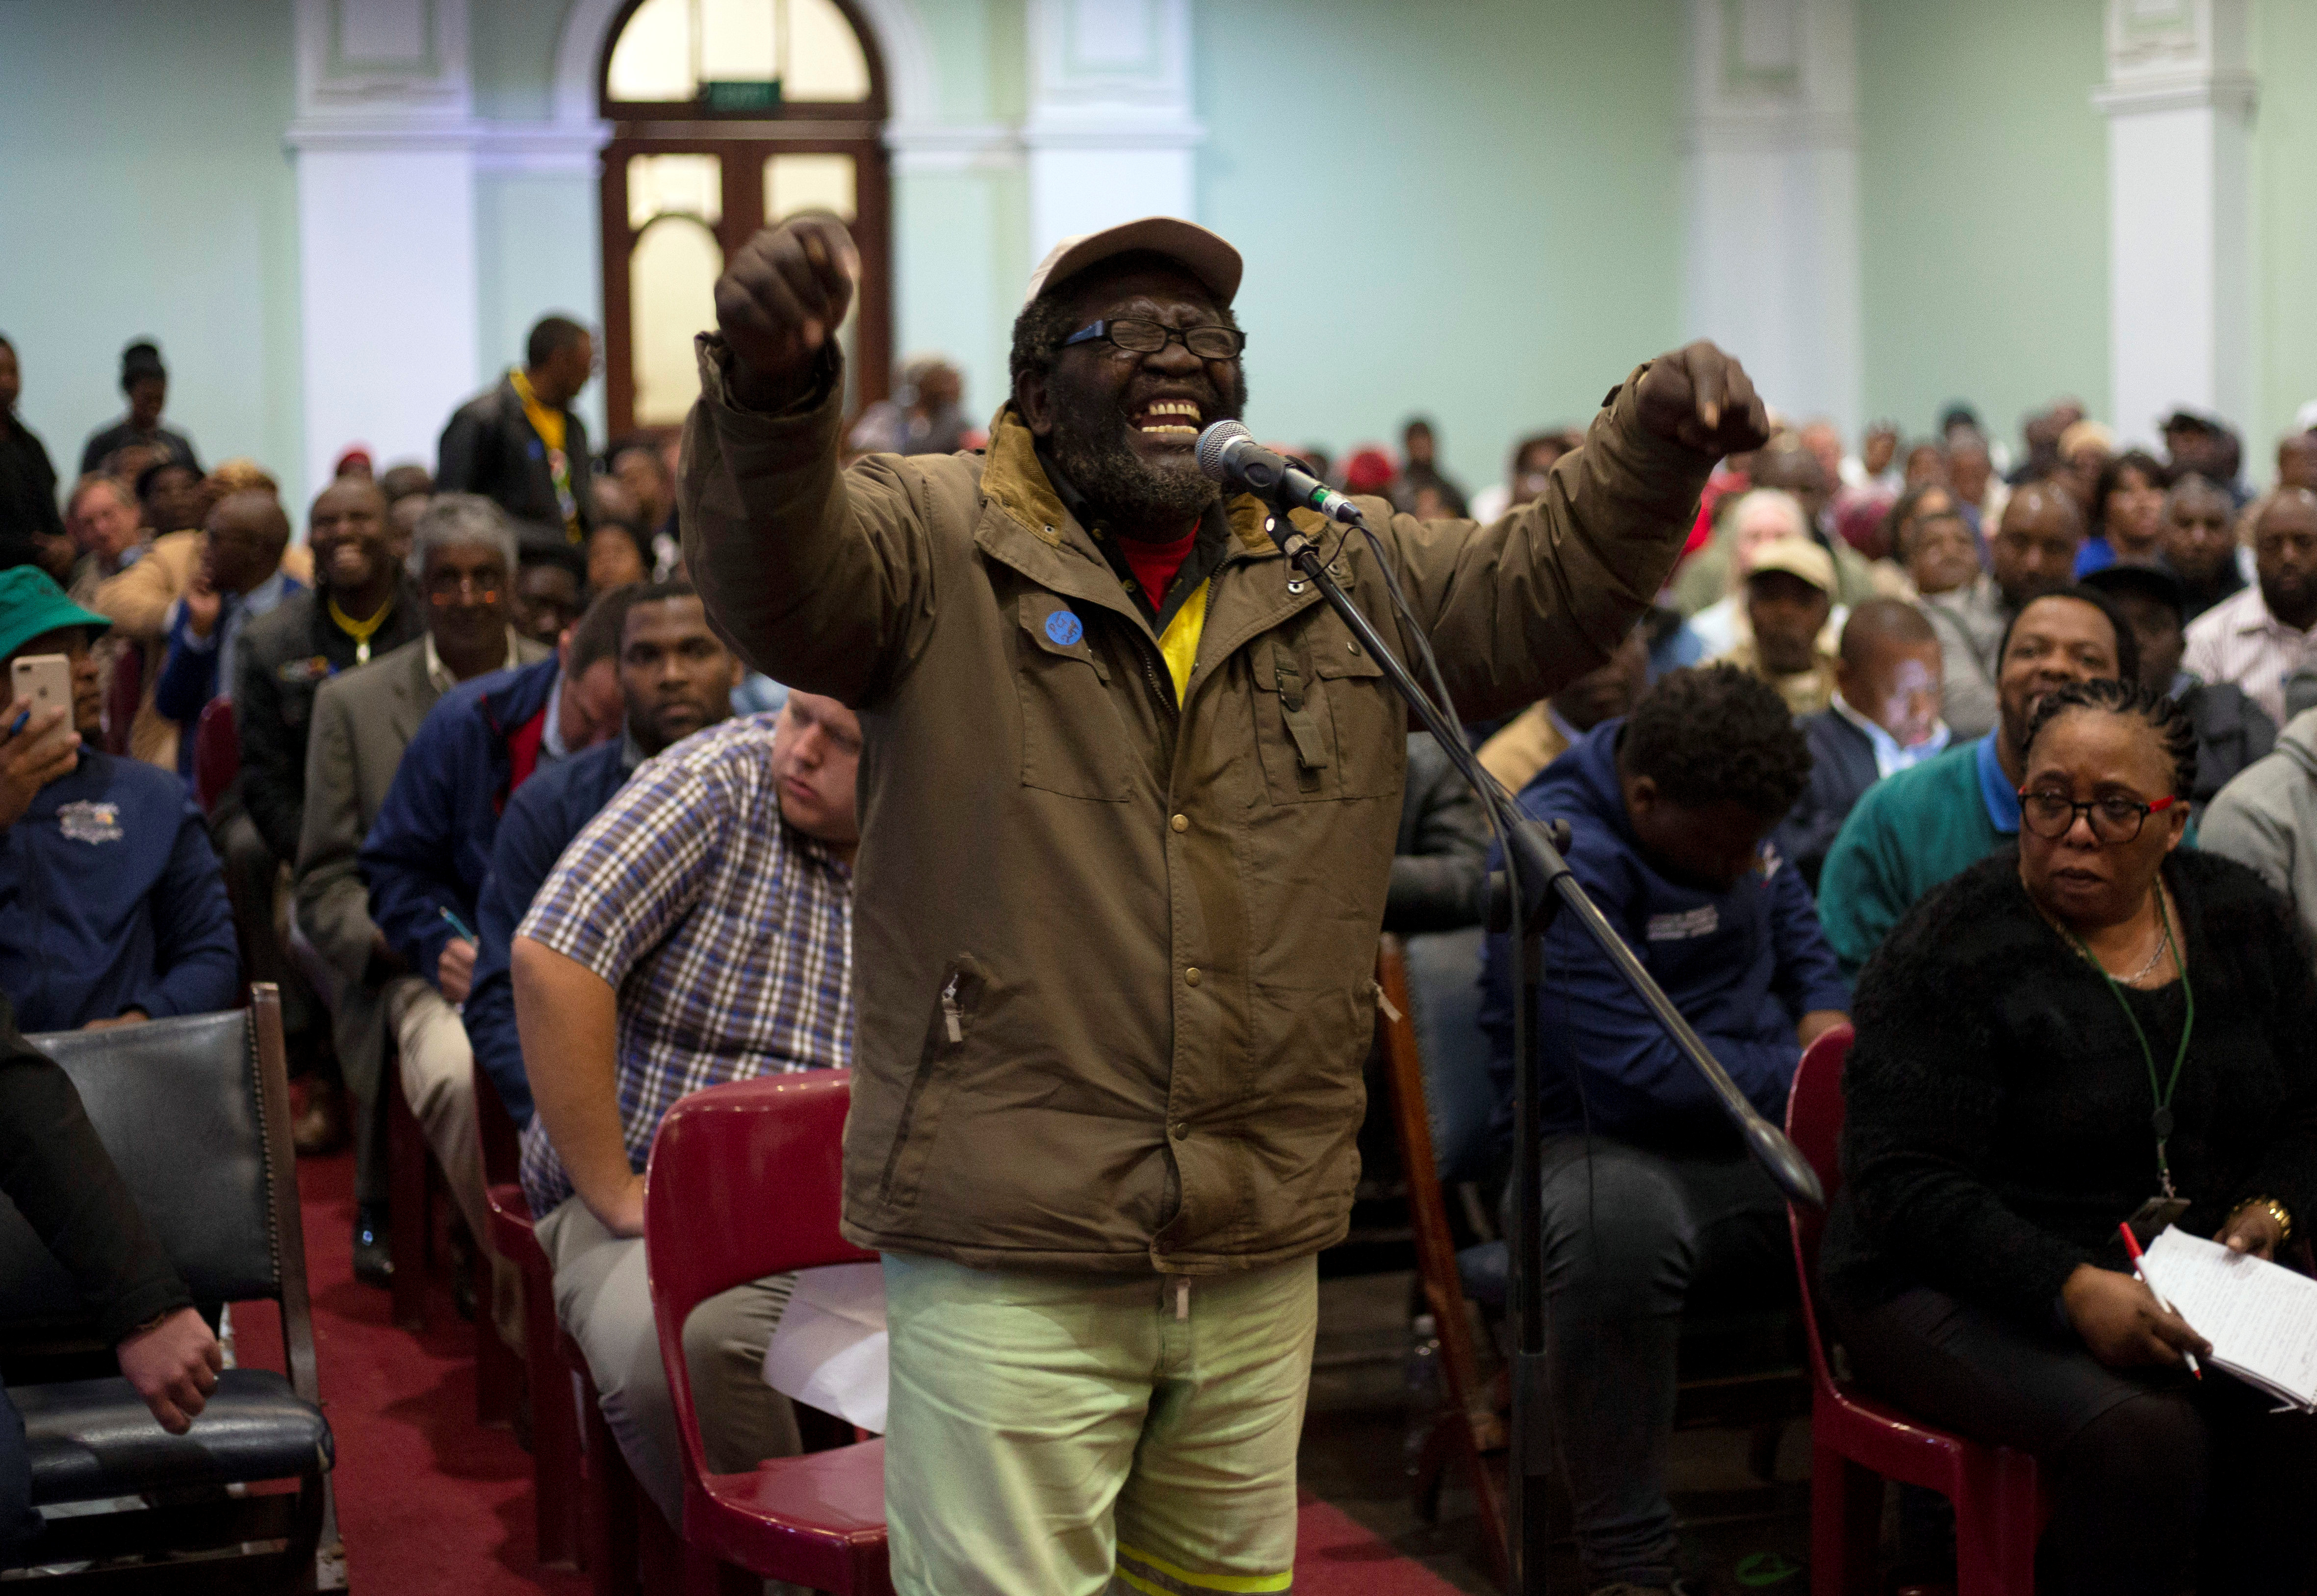 A man speaks as the Constitutional Review Committee hold public hearings regarding expropriation of land without compensation in Pietermaritzburg, South Africa, July 20, 2018.